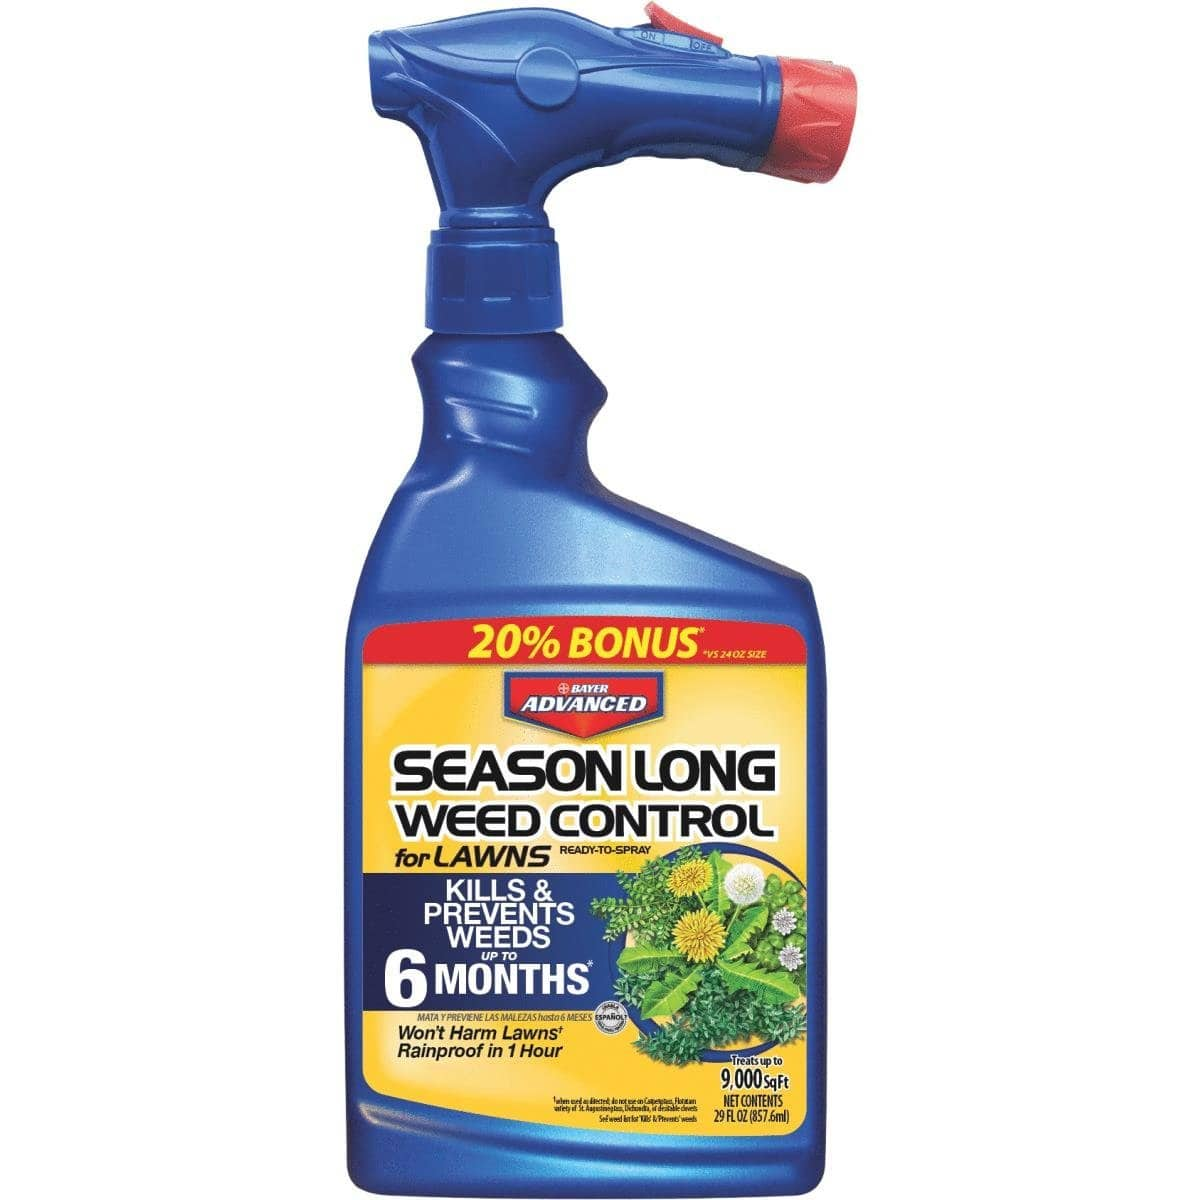 24 oz. Ready-to-Spray Season Long Weed Control for Lawn $2.48 after rebate @ homedepot